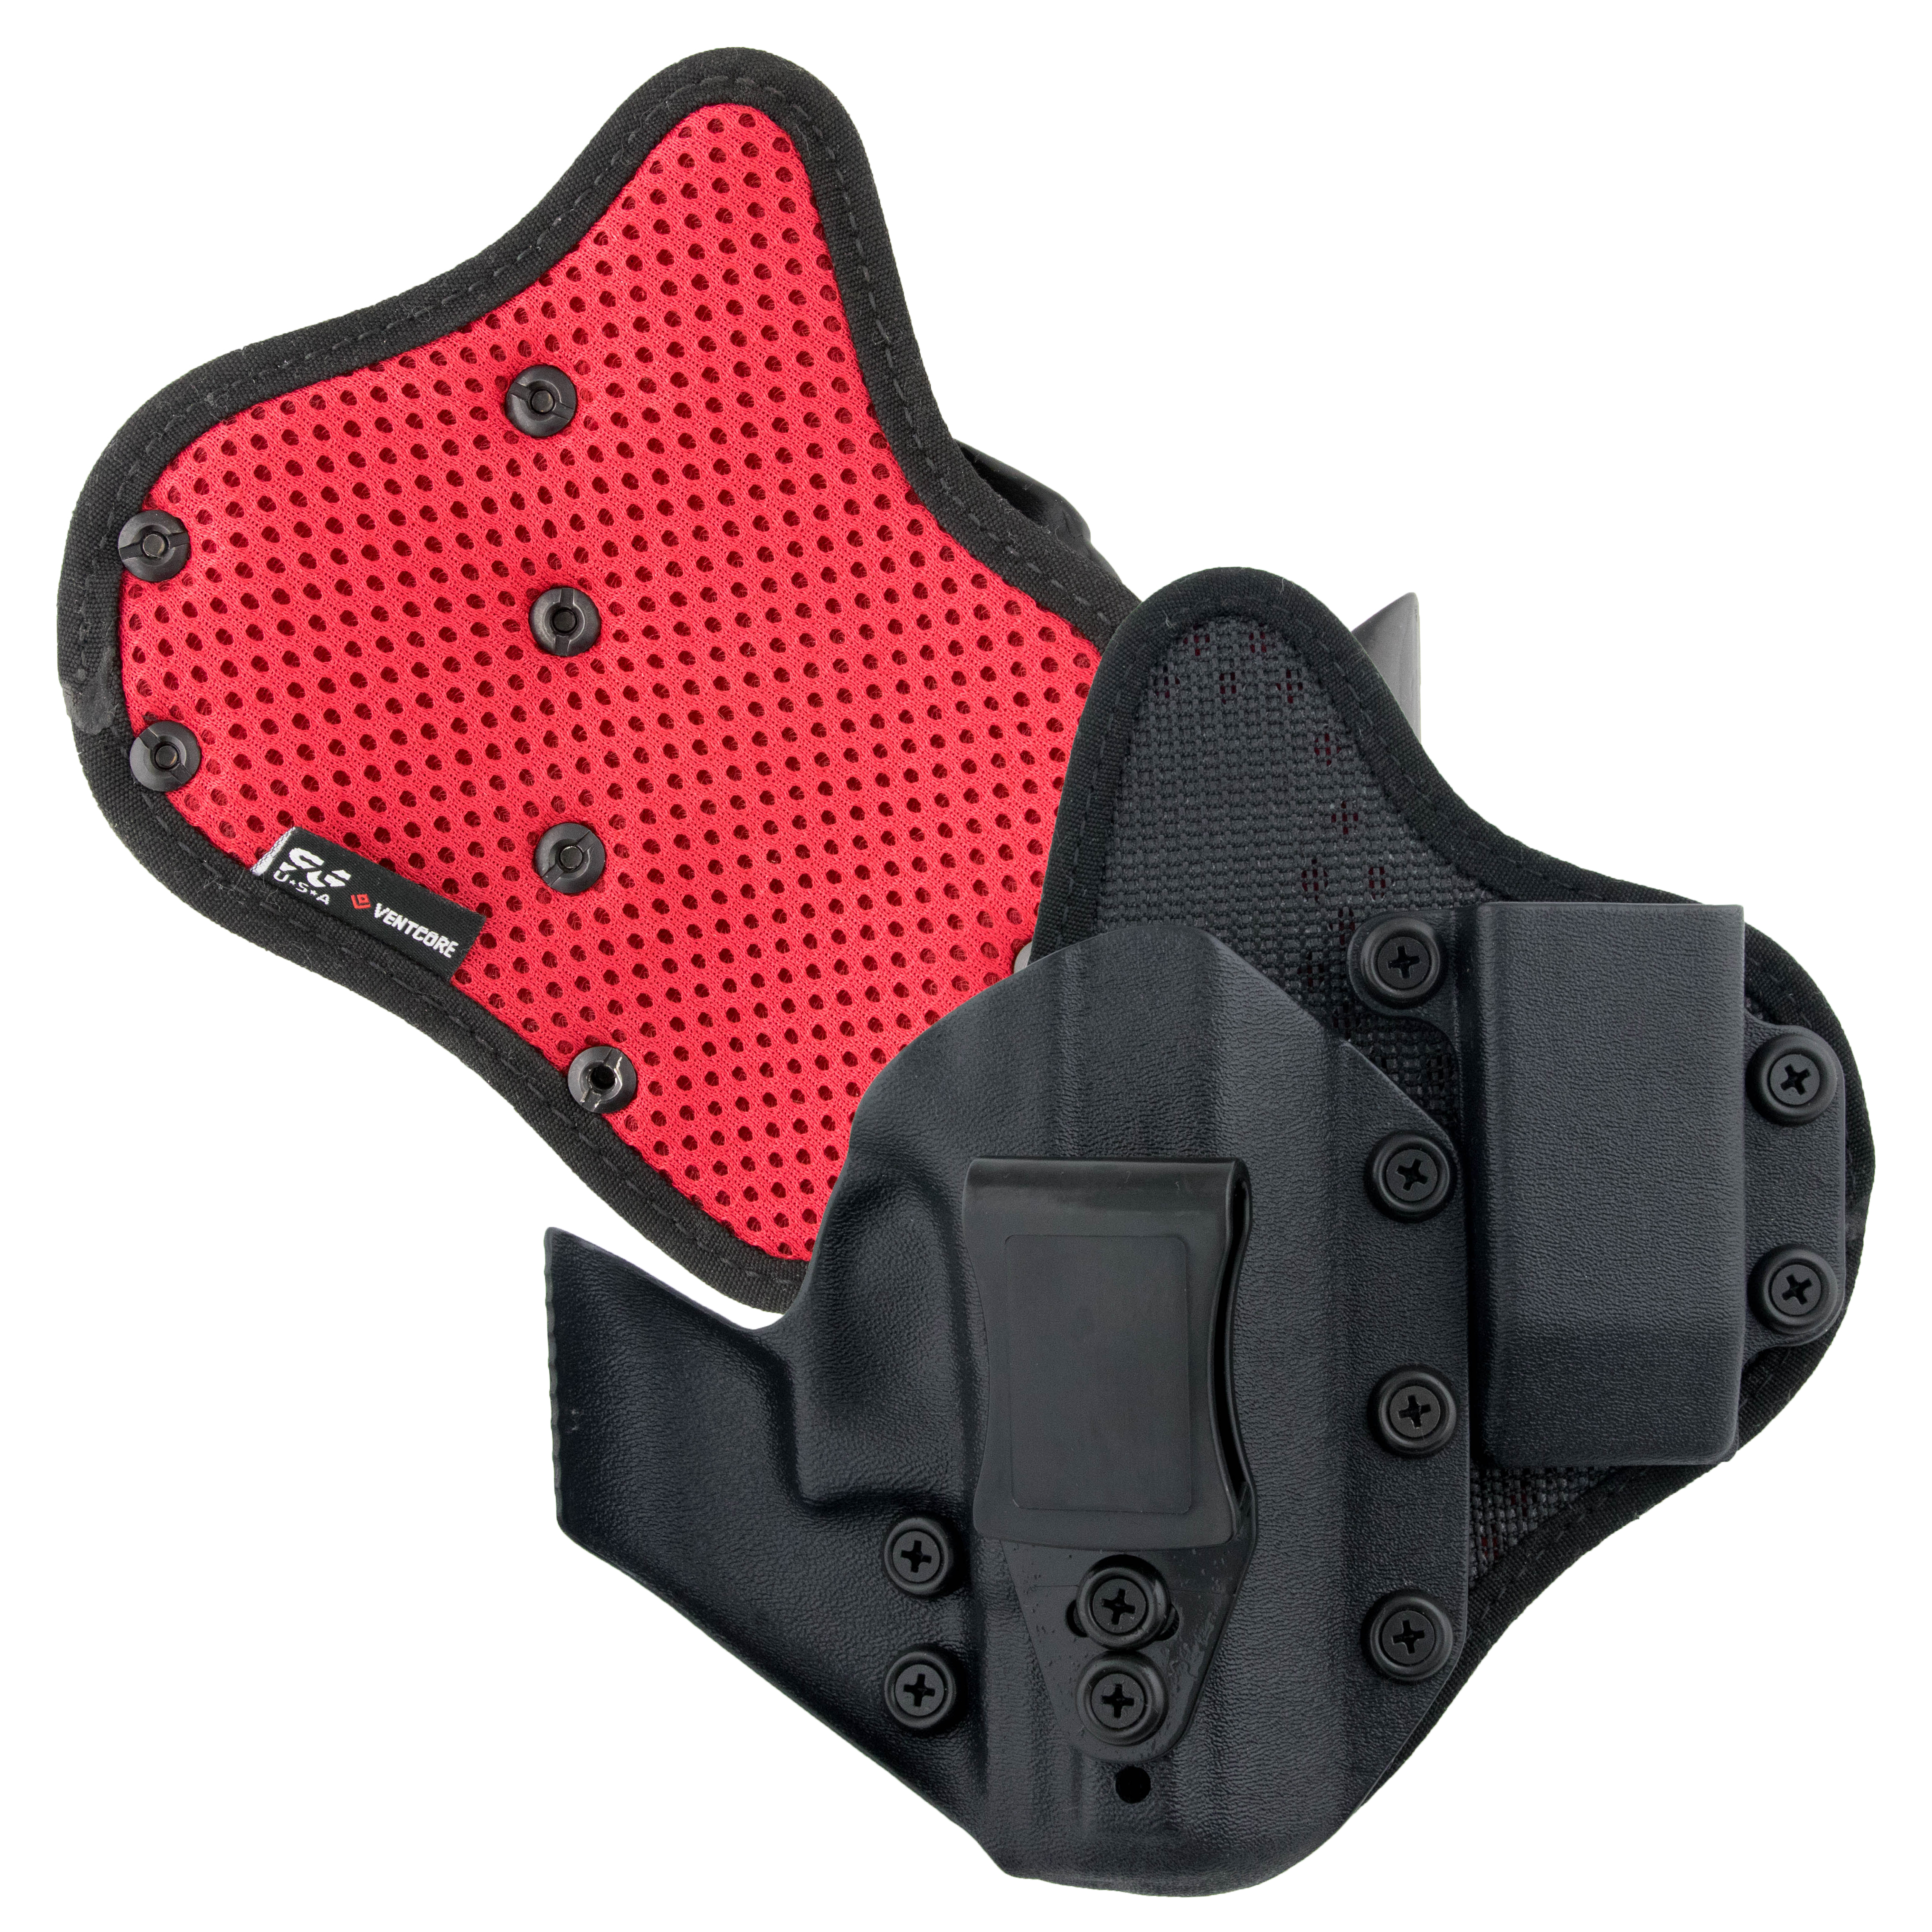 stealthgearusa-product-image-vc-scorpion-.png